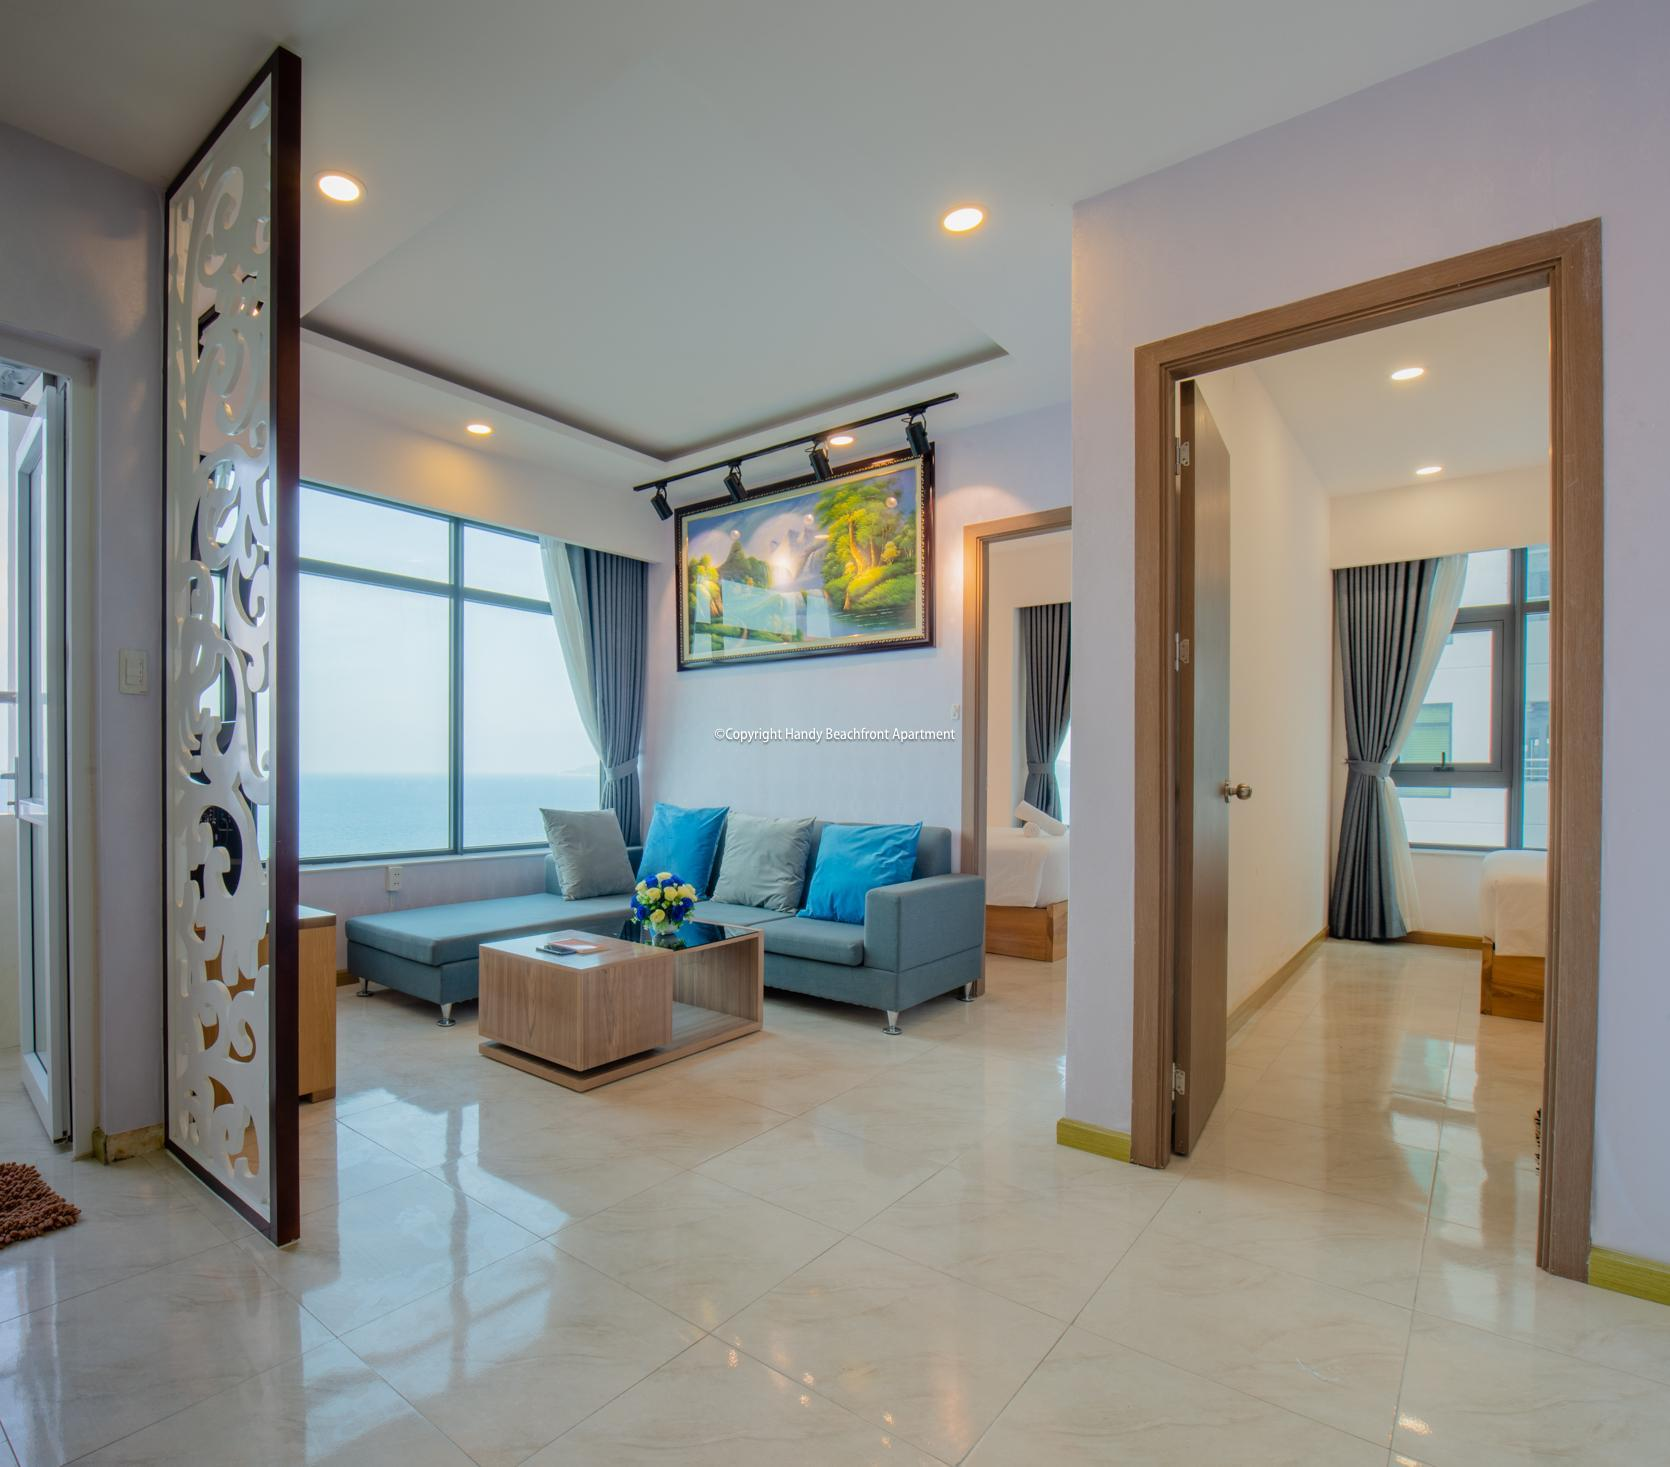 2. Panorama Ocean View+2bed Room With 2 Big Window